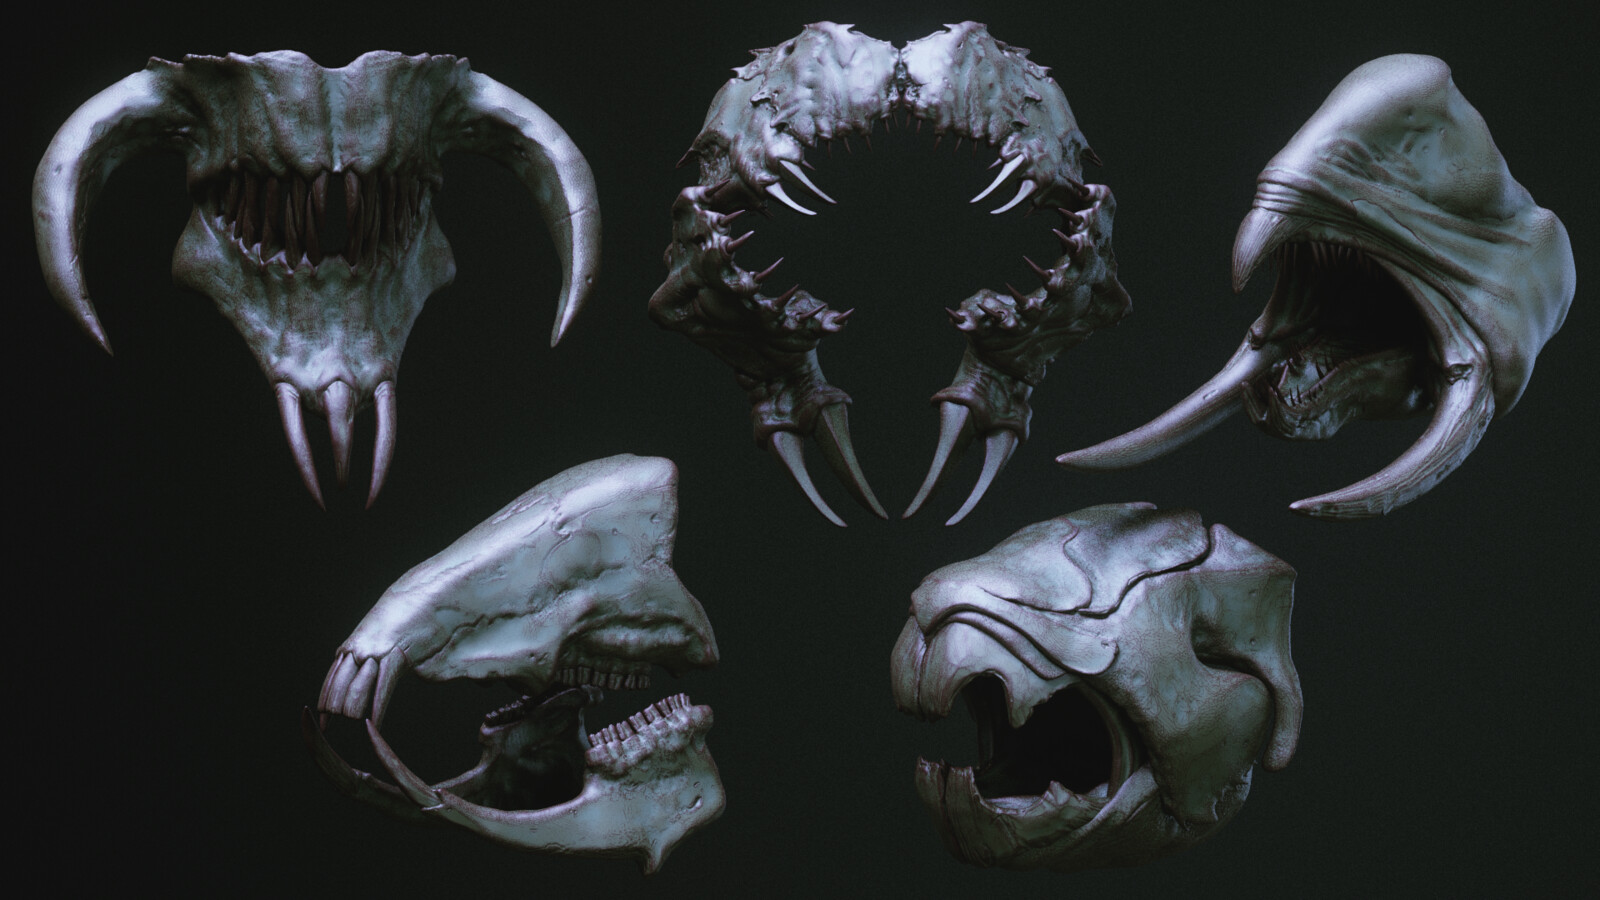 Demon ■ Cacotic ■ Corrupted ■ Goat Lord ■ Cleos